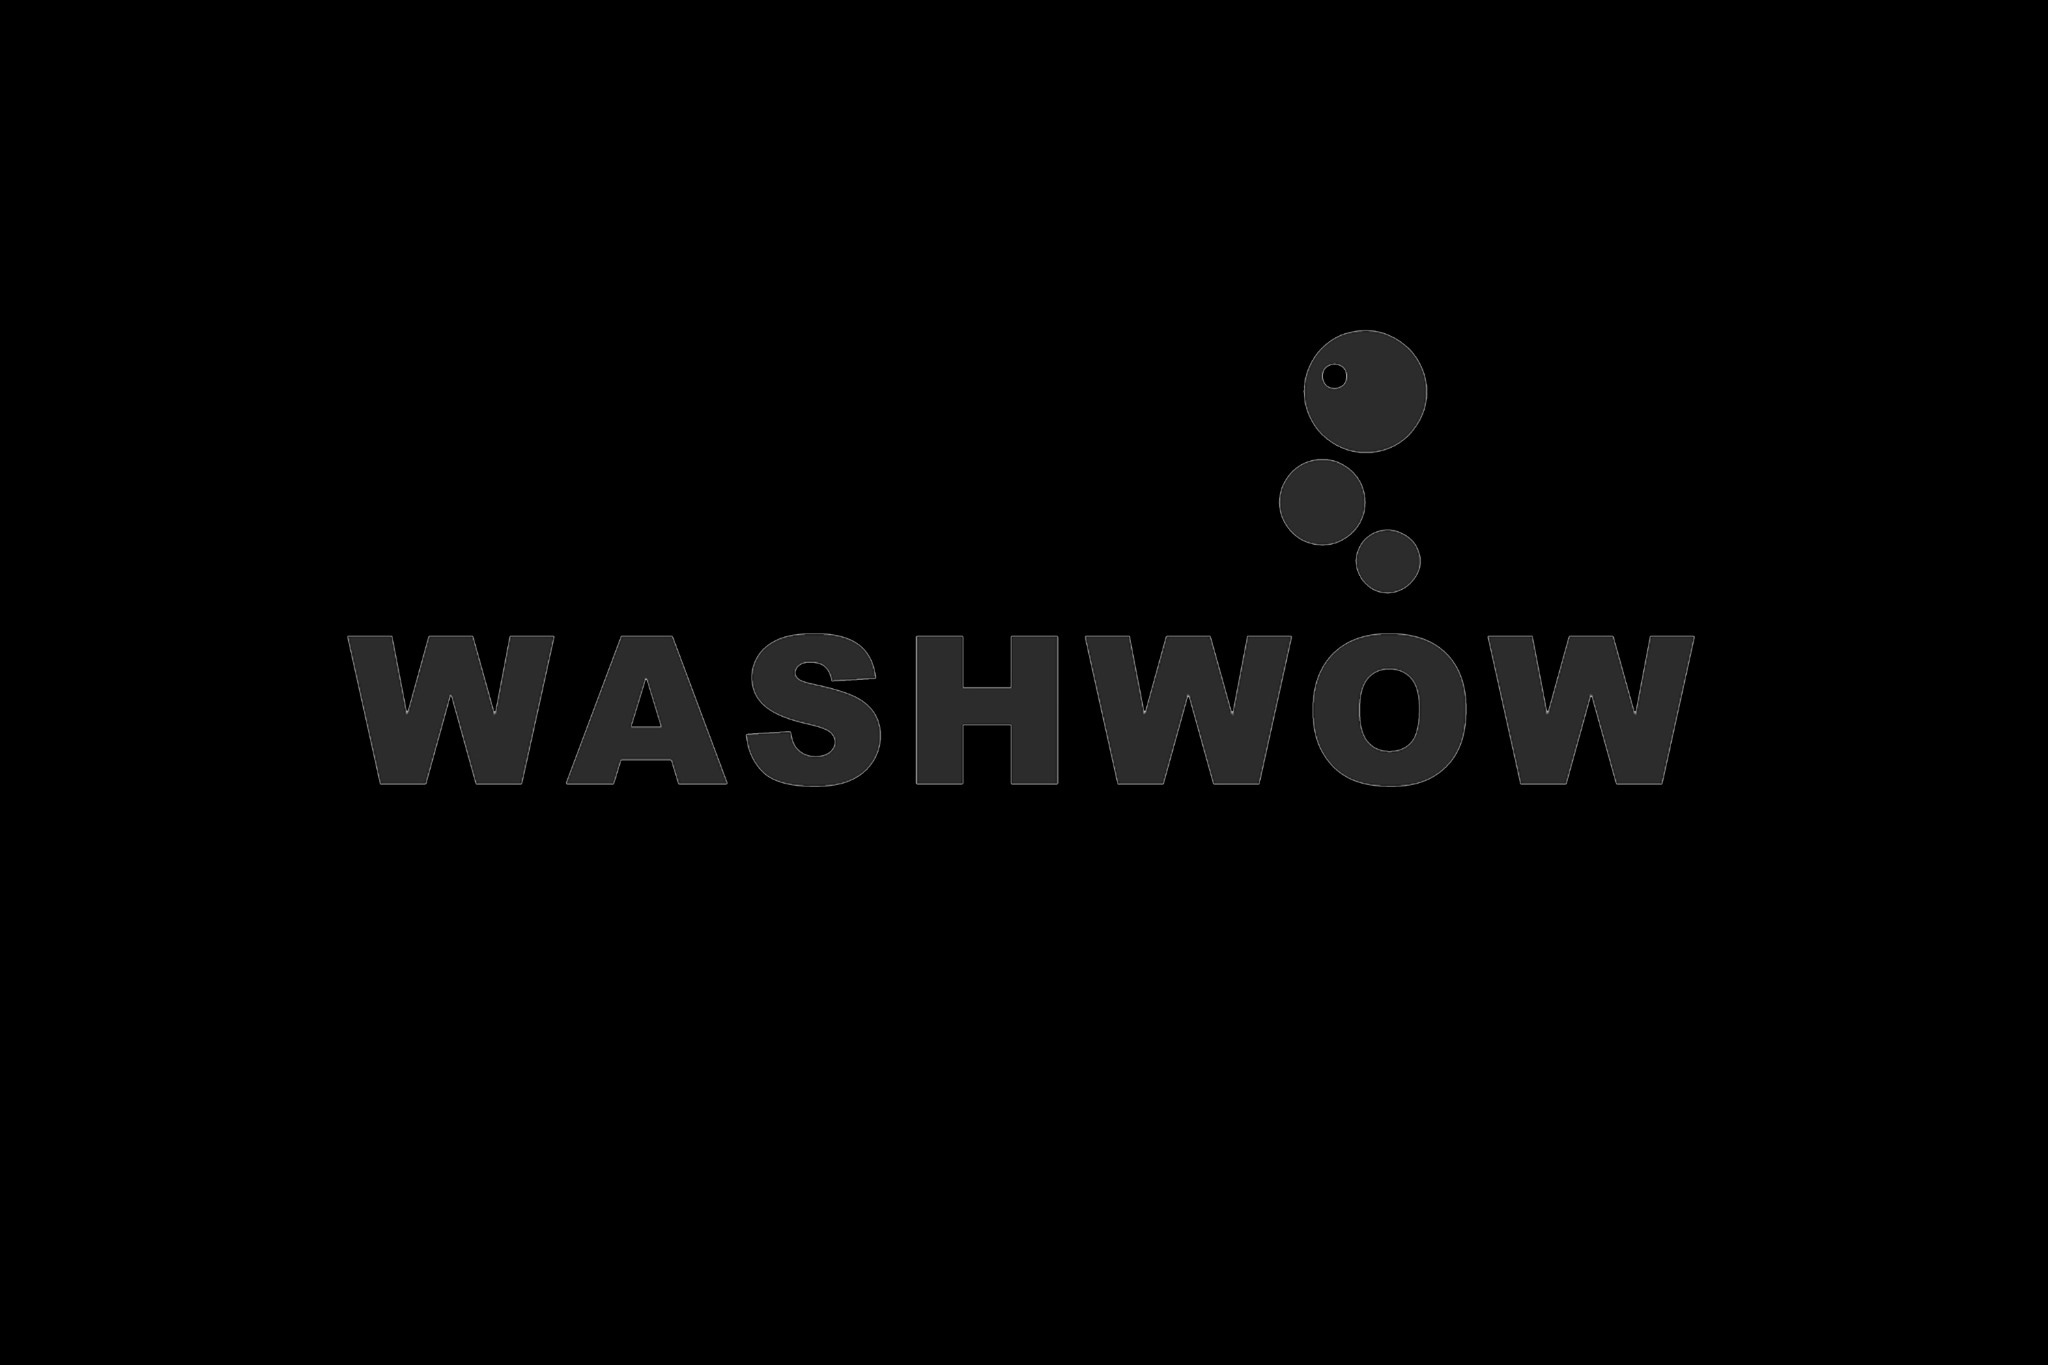 Washwow promo codes